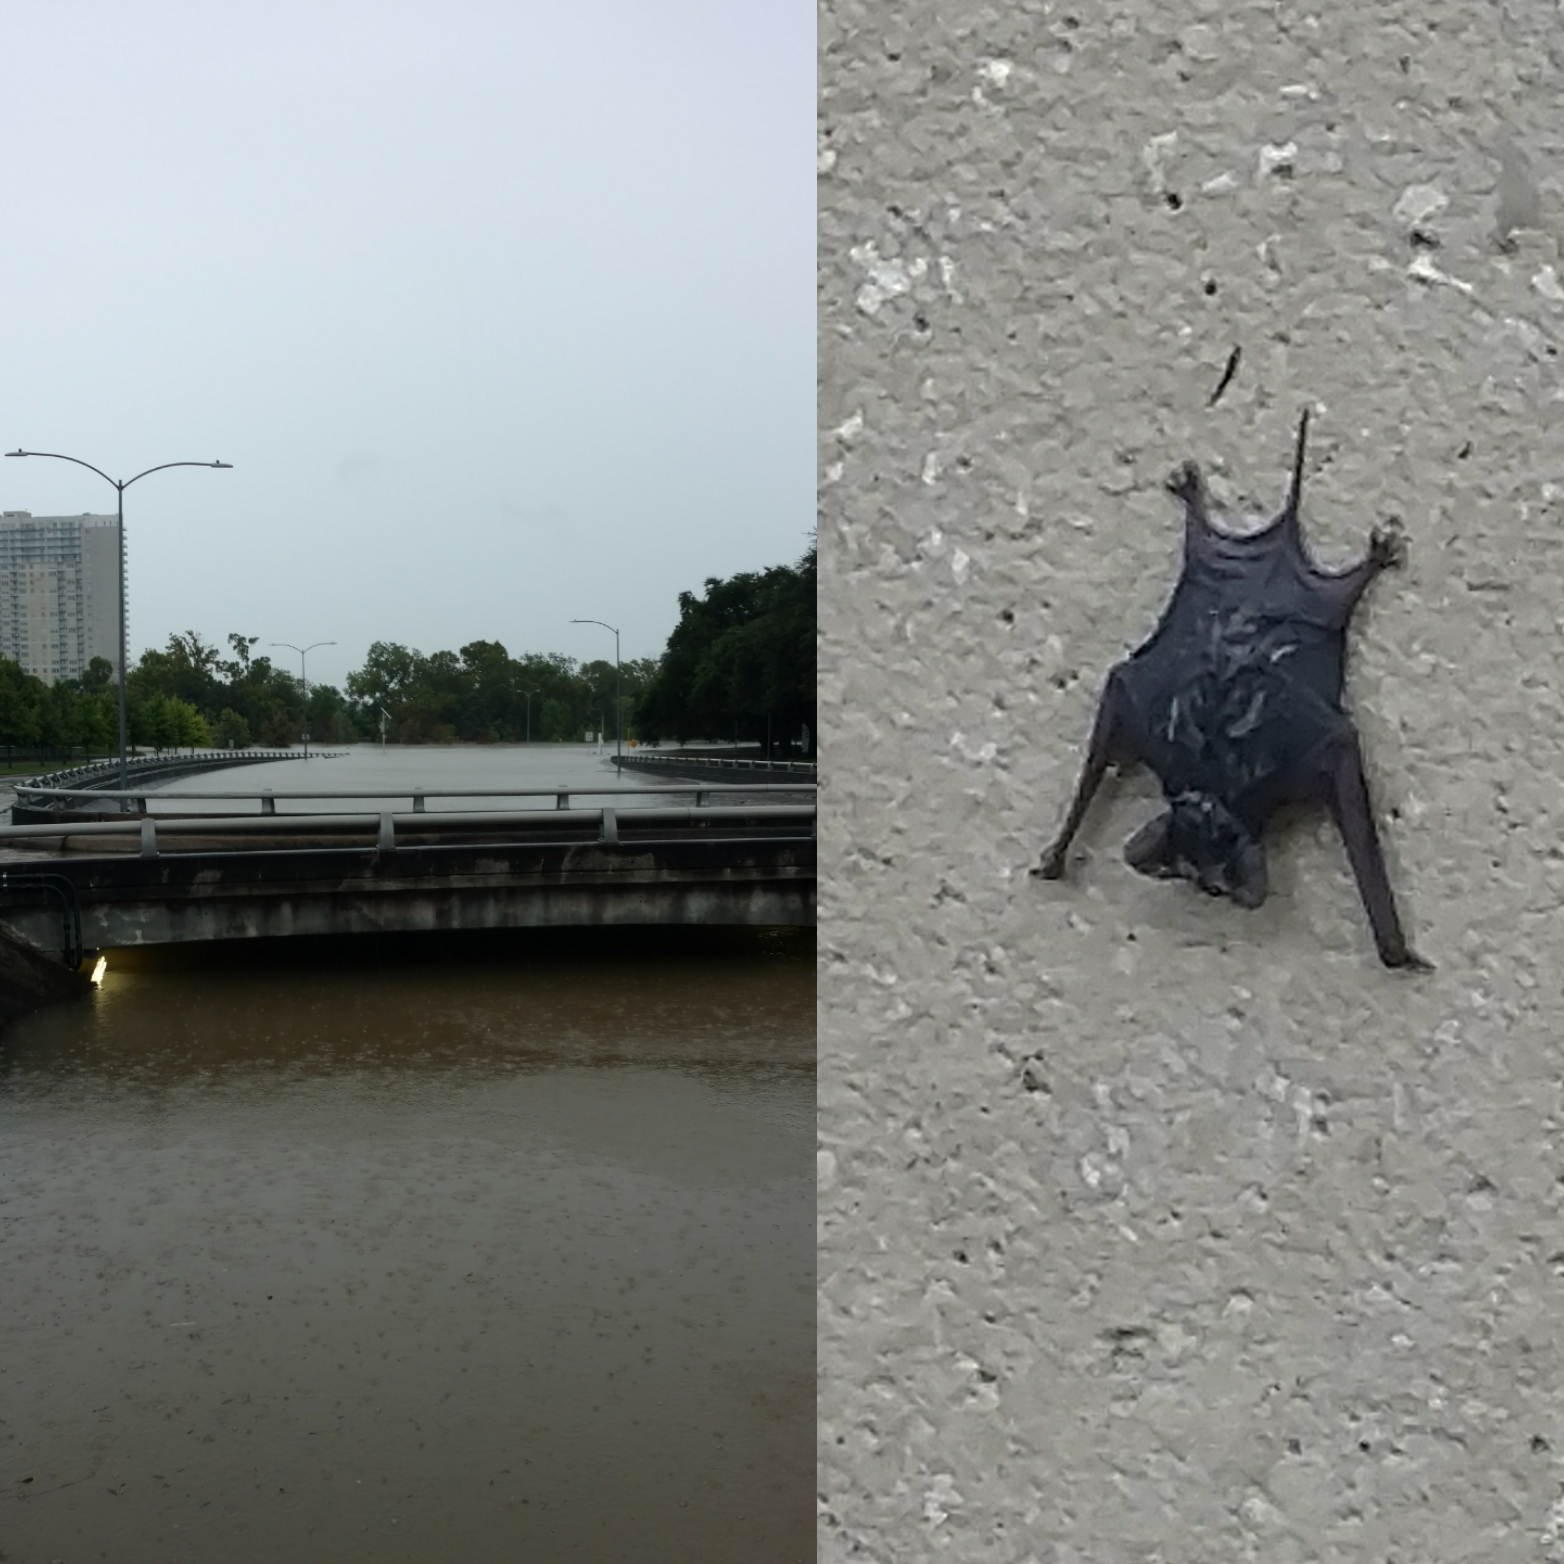 Bats From The Local Bat Colony Litter Walls Of America Tower After Waugh Bridge Gets Flooded Houston Chronicle